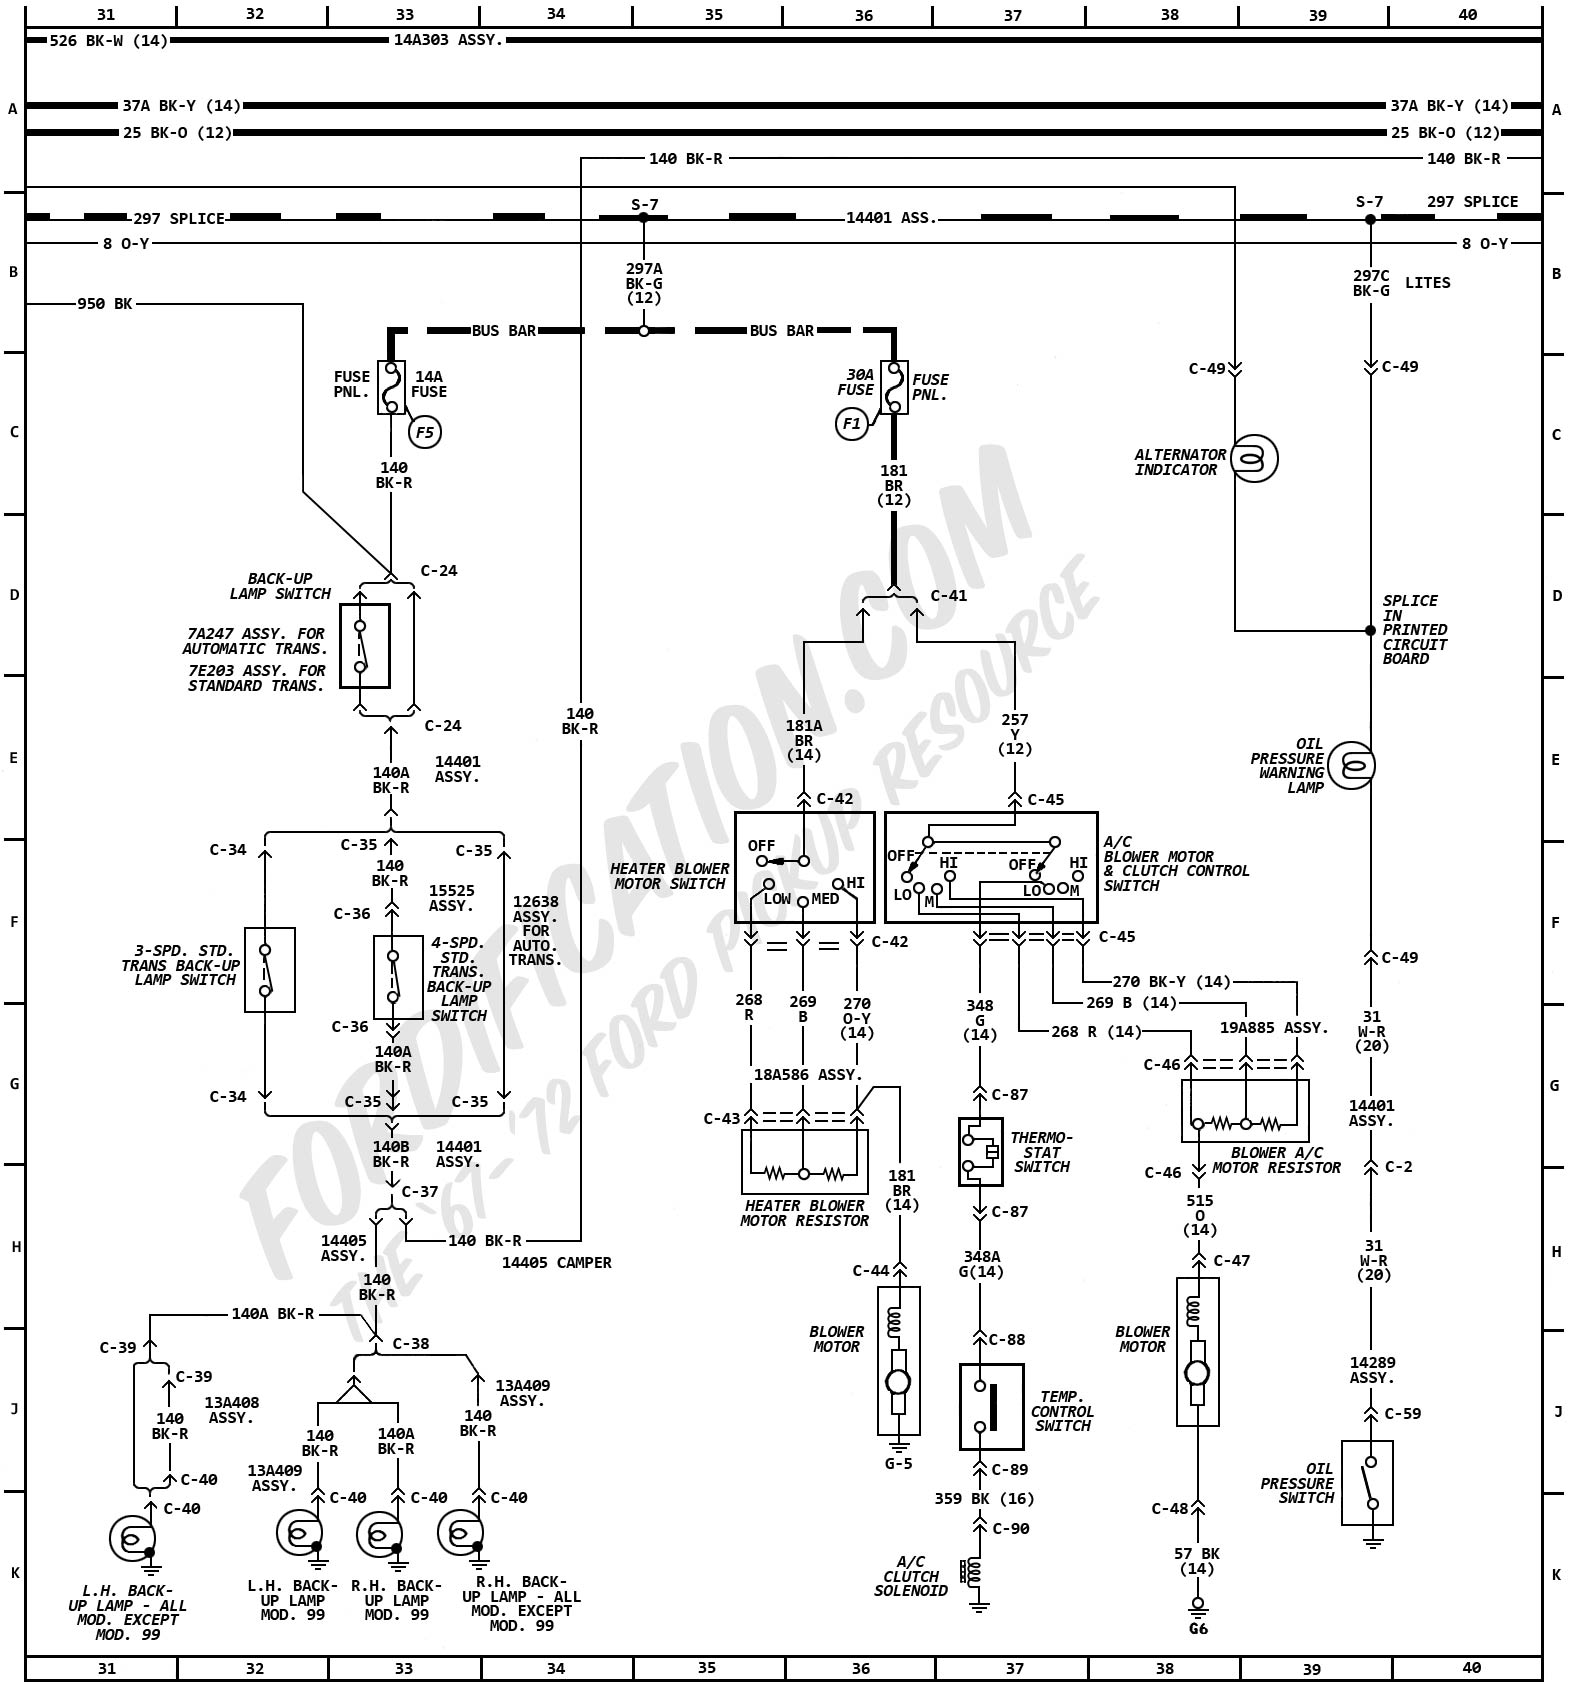 1972MasterWiring_04 1972 ford truck wiring diagrams fordification com motor wiring diagram at gsmportal.co